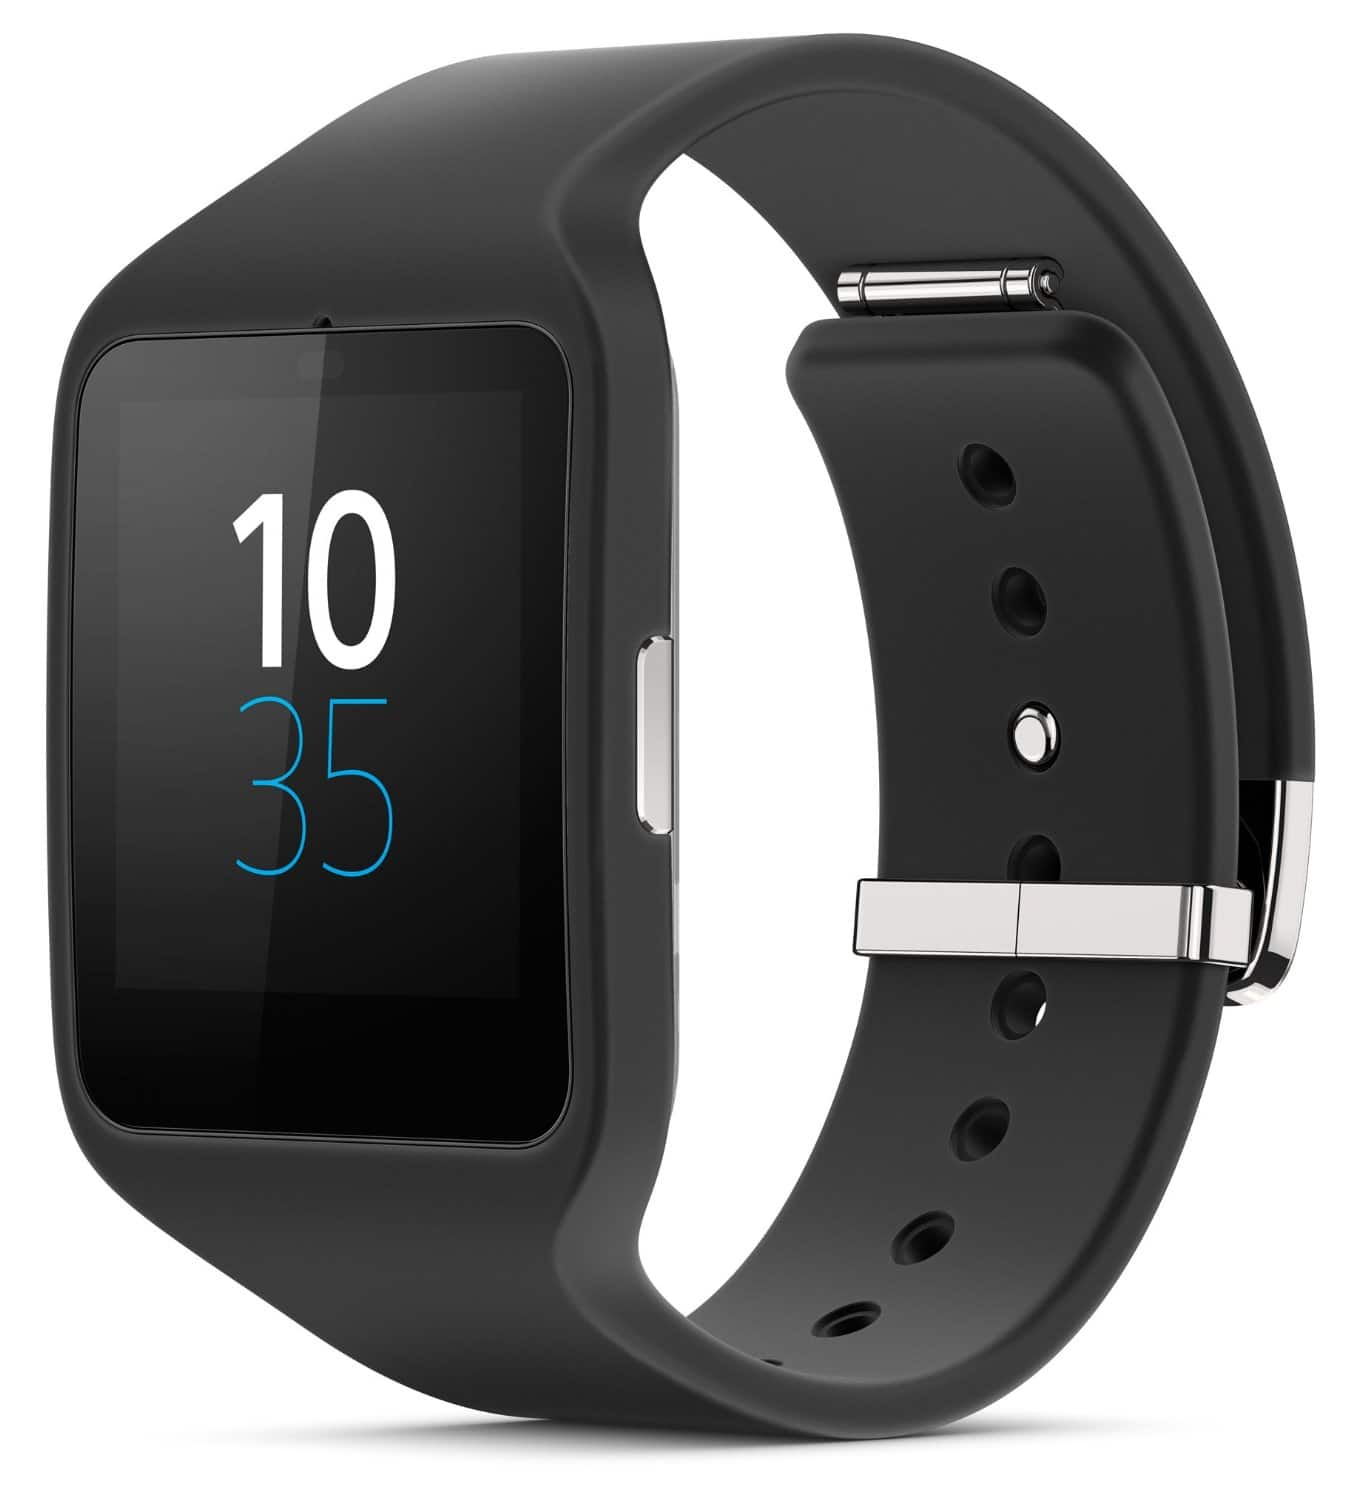 Sony Smartwatch 3 Available in Black and White for $149.99 with Free Shipping